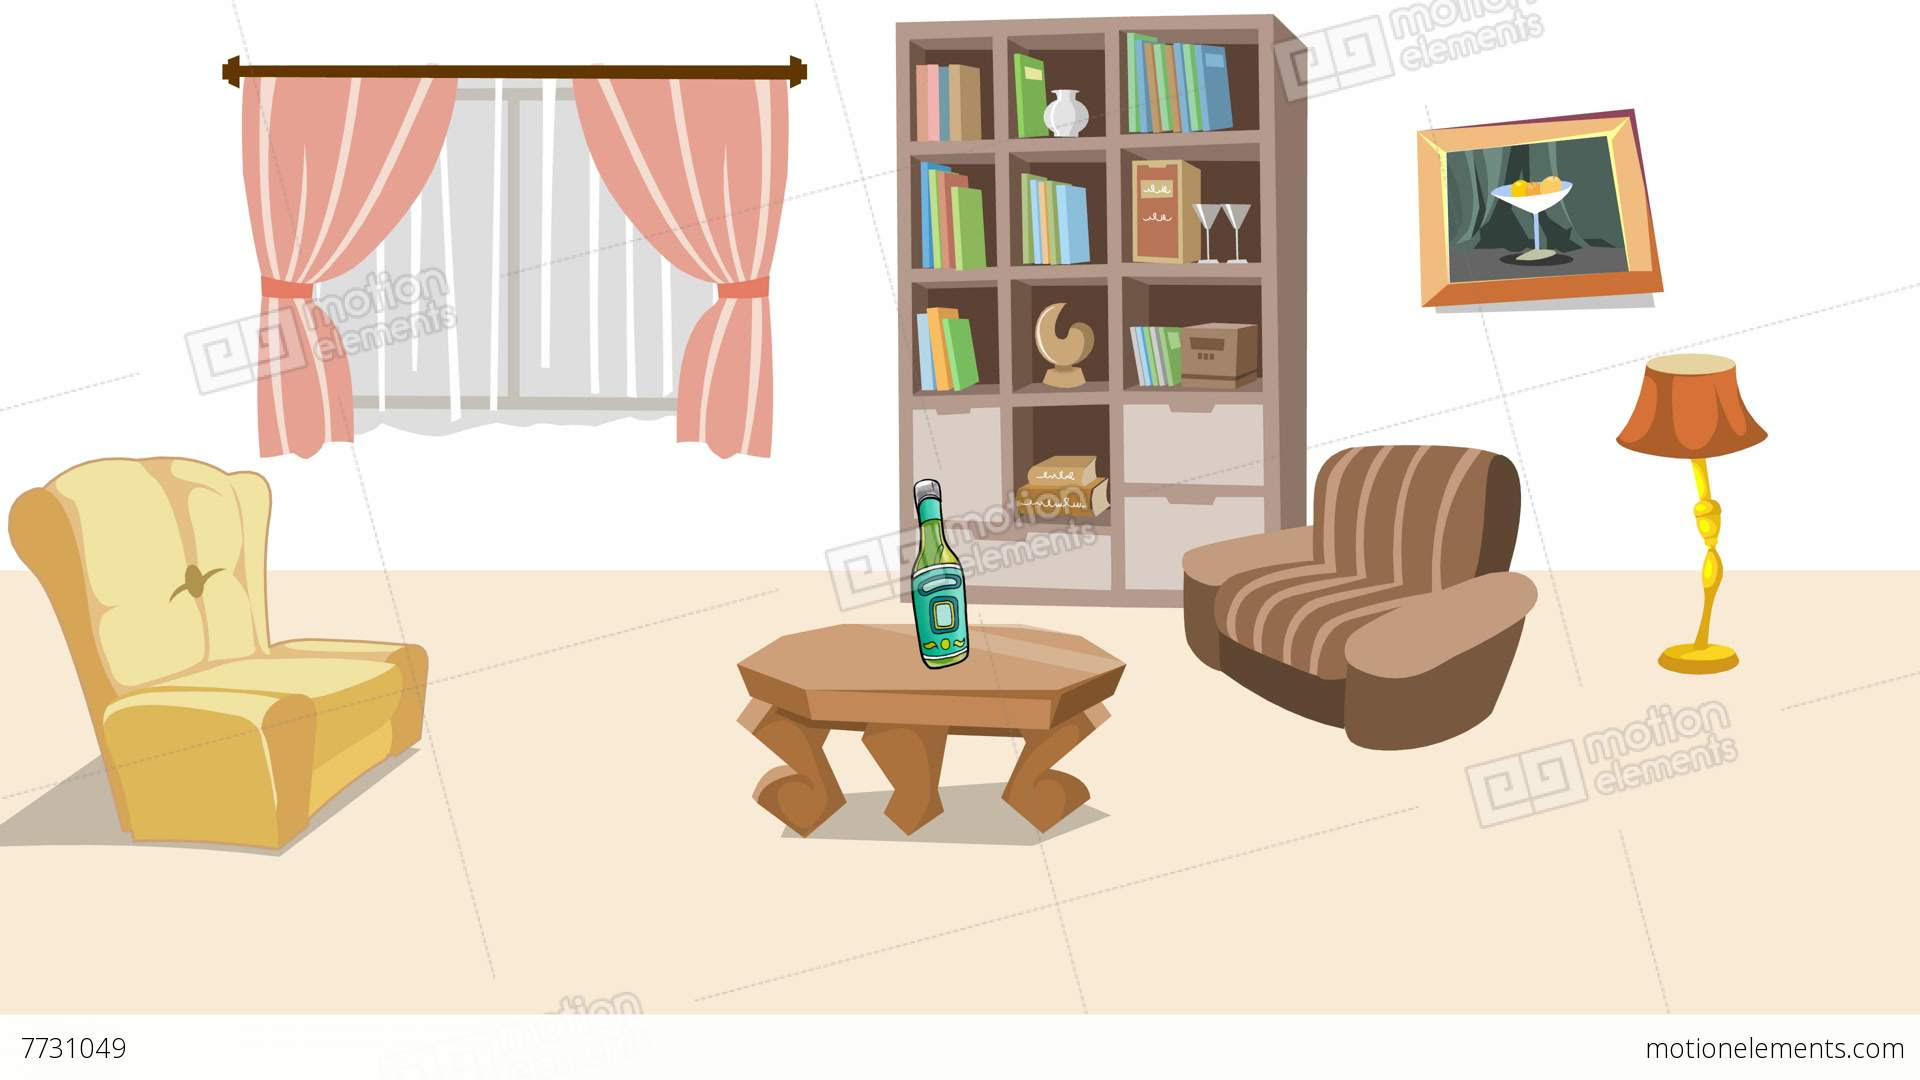 me7731049 earthquake cartoon living room hd a0091